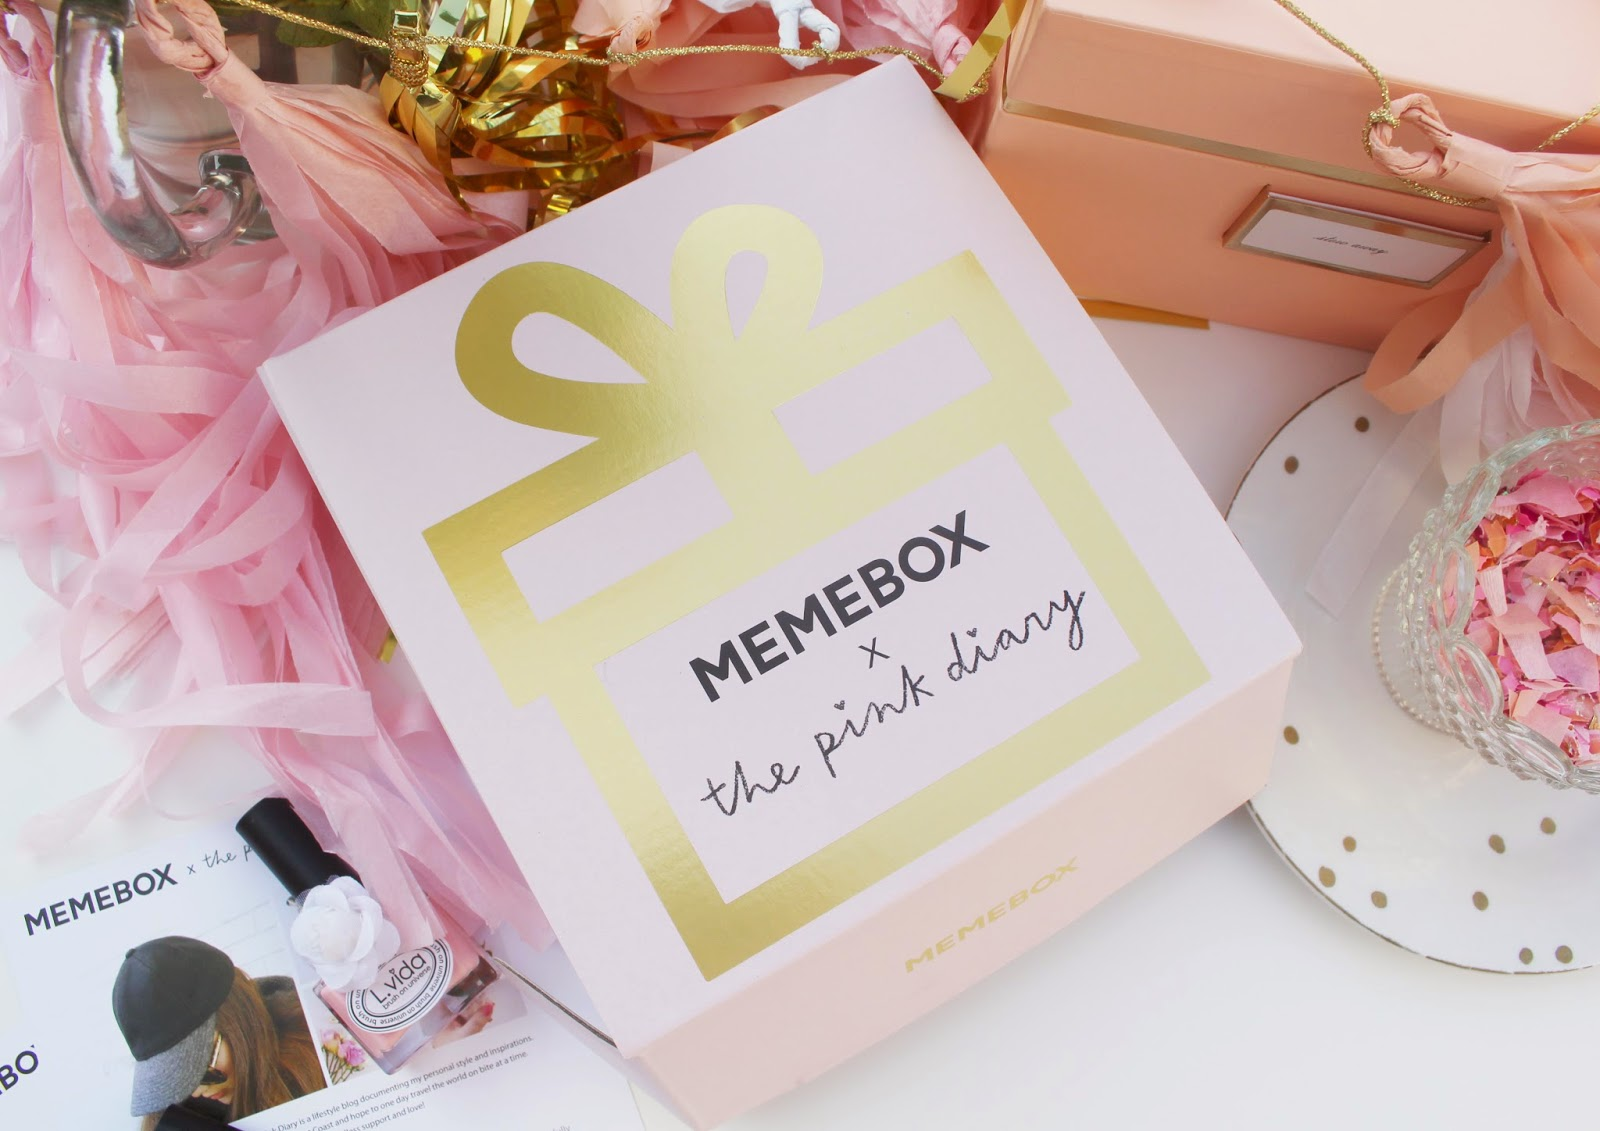 MEMEBOX x The Pink Diary - Money Can Buy Lipstick